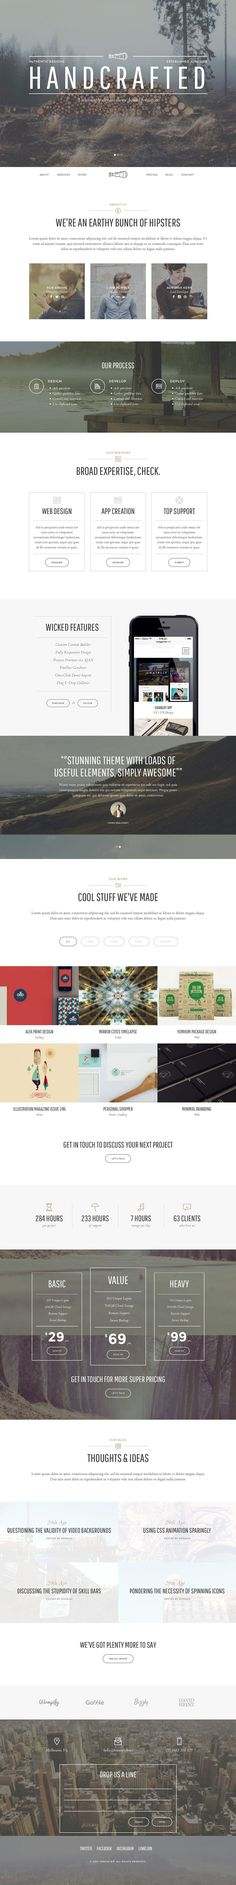 Thread - Multi-Purpose Theme, modern vintage